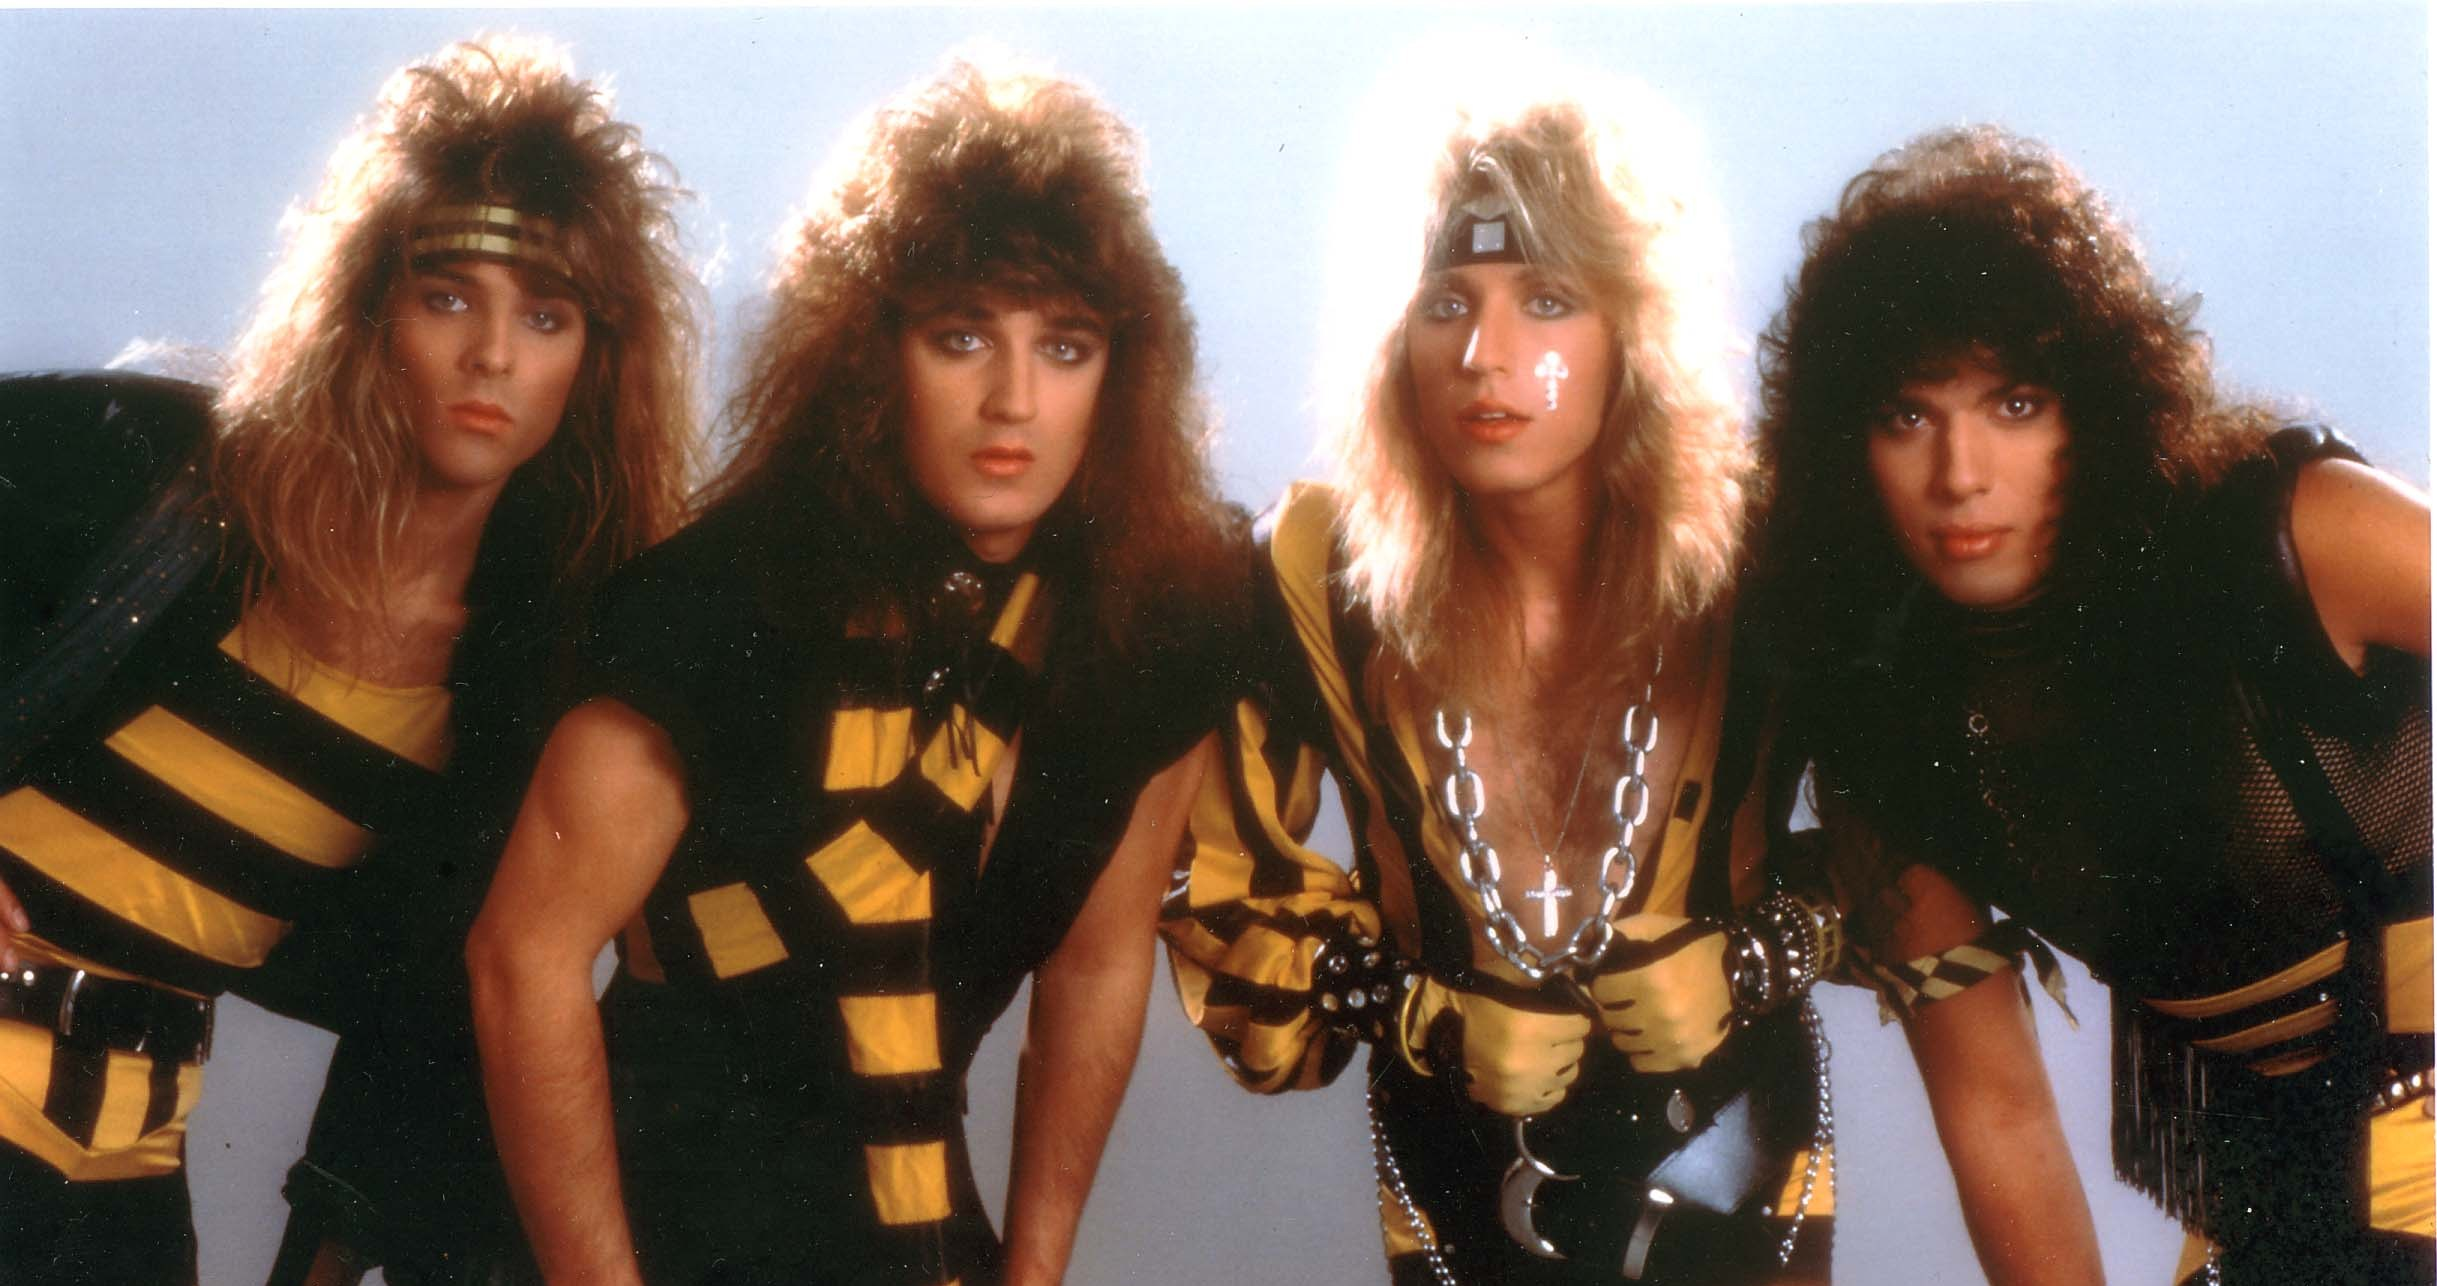 the yellow black attack is back stryper 39 s michael sweet talks about their music videos. Black Bedroom Furniture Sets. Home Design Ideas